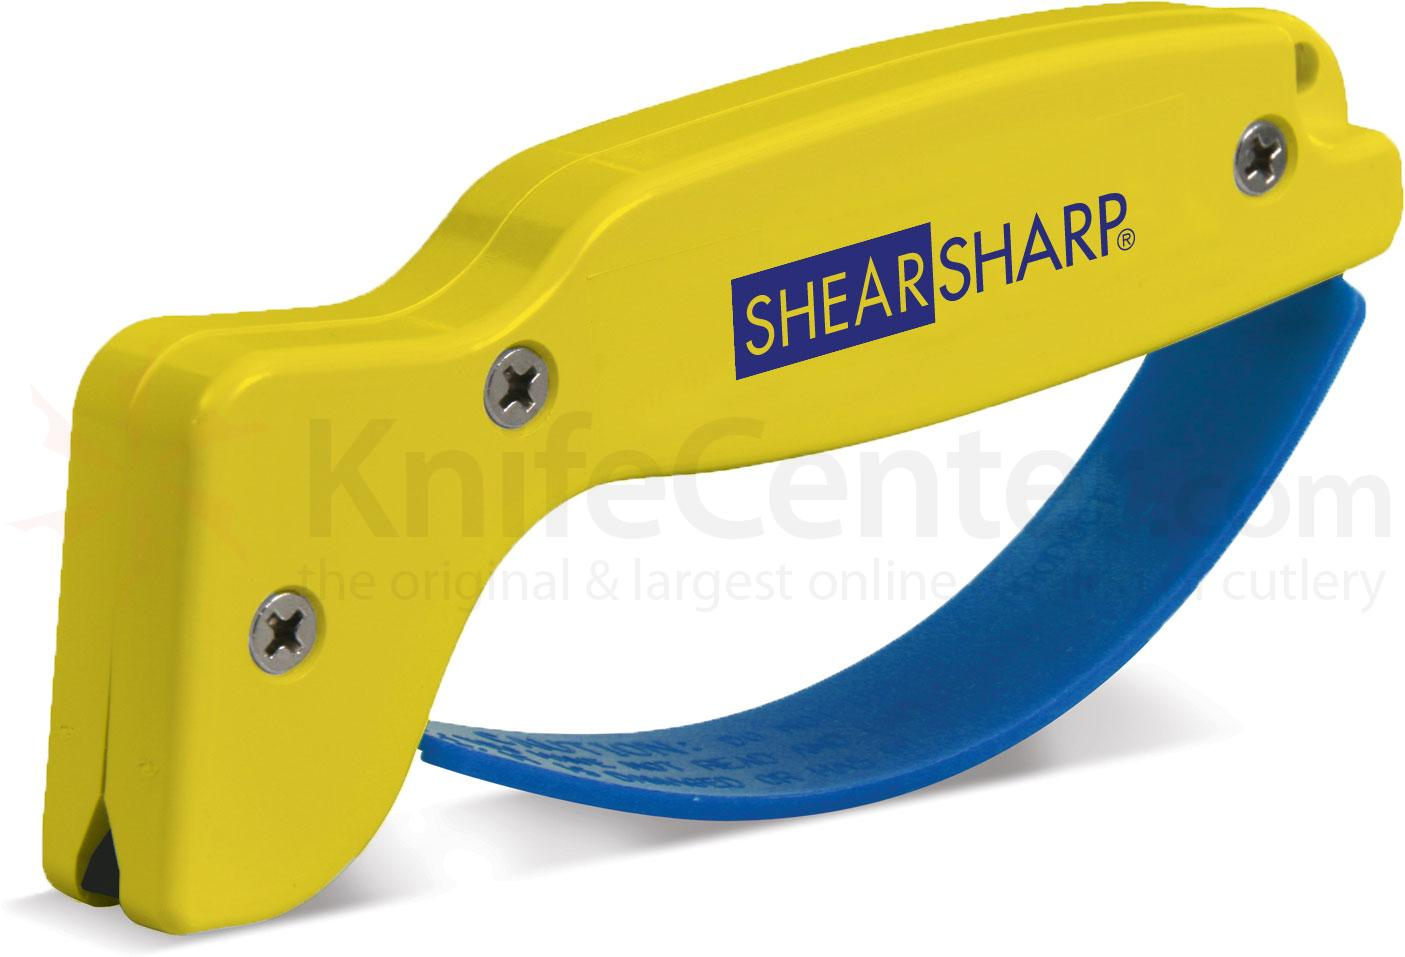 Accusharp 002 V ShearSharp Carbide Scissor Sharpener